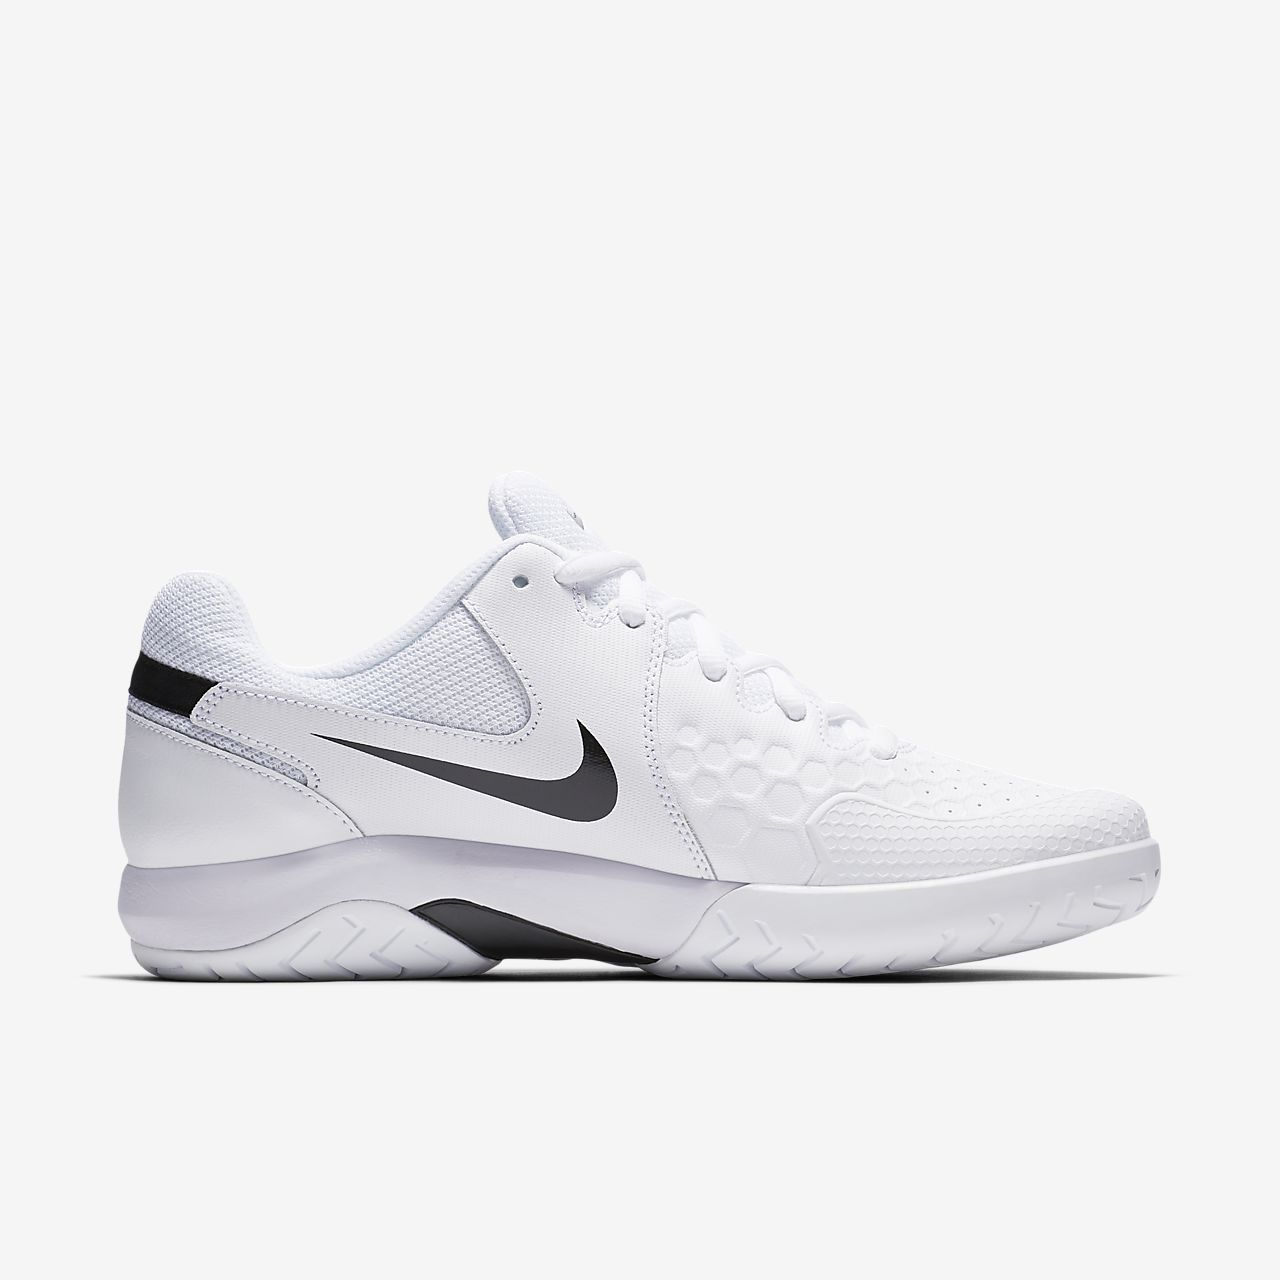 2ba6041a13c nikecourt-air-zoom-resistance-hard-court-tennis-shoe-rJTGAGEP.jpg